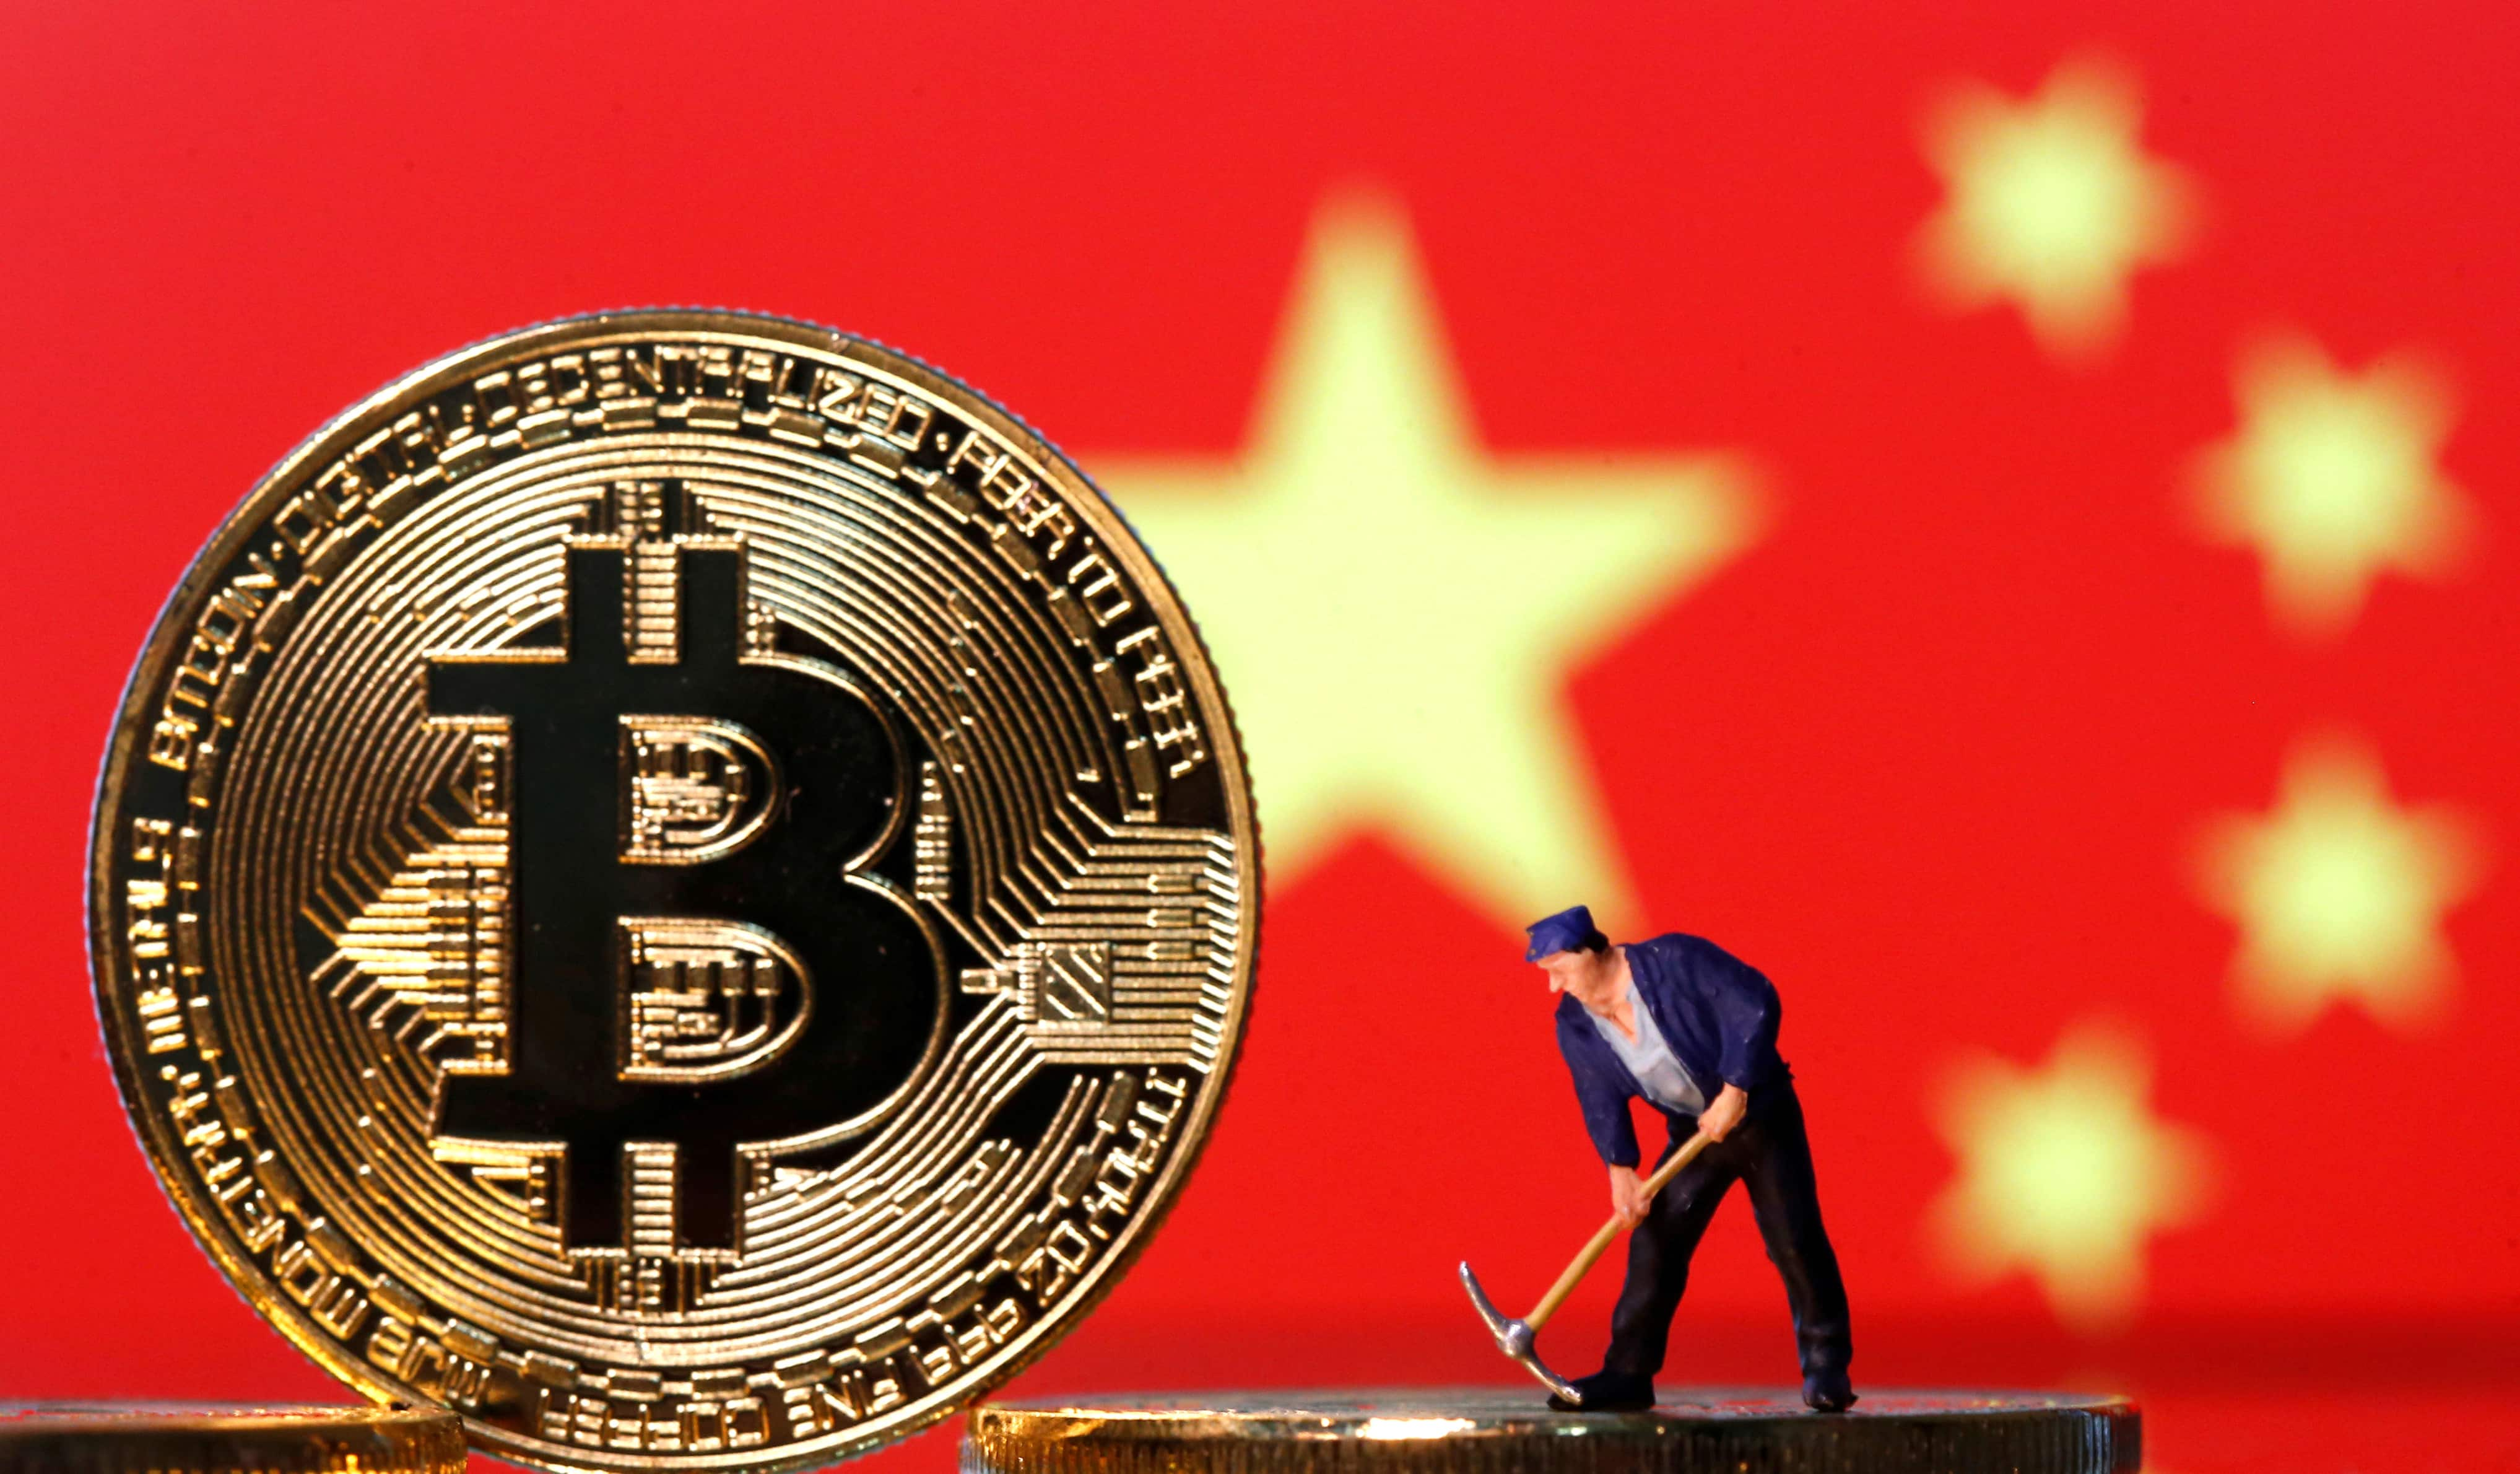 Chinese Authorities Order Sichuan-based Crypto Miners to Shut Down  Operations